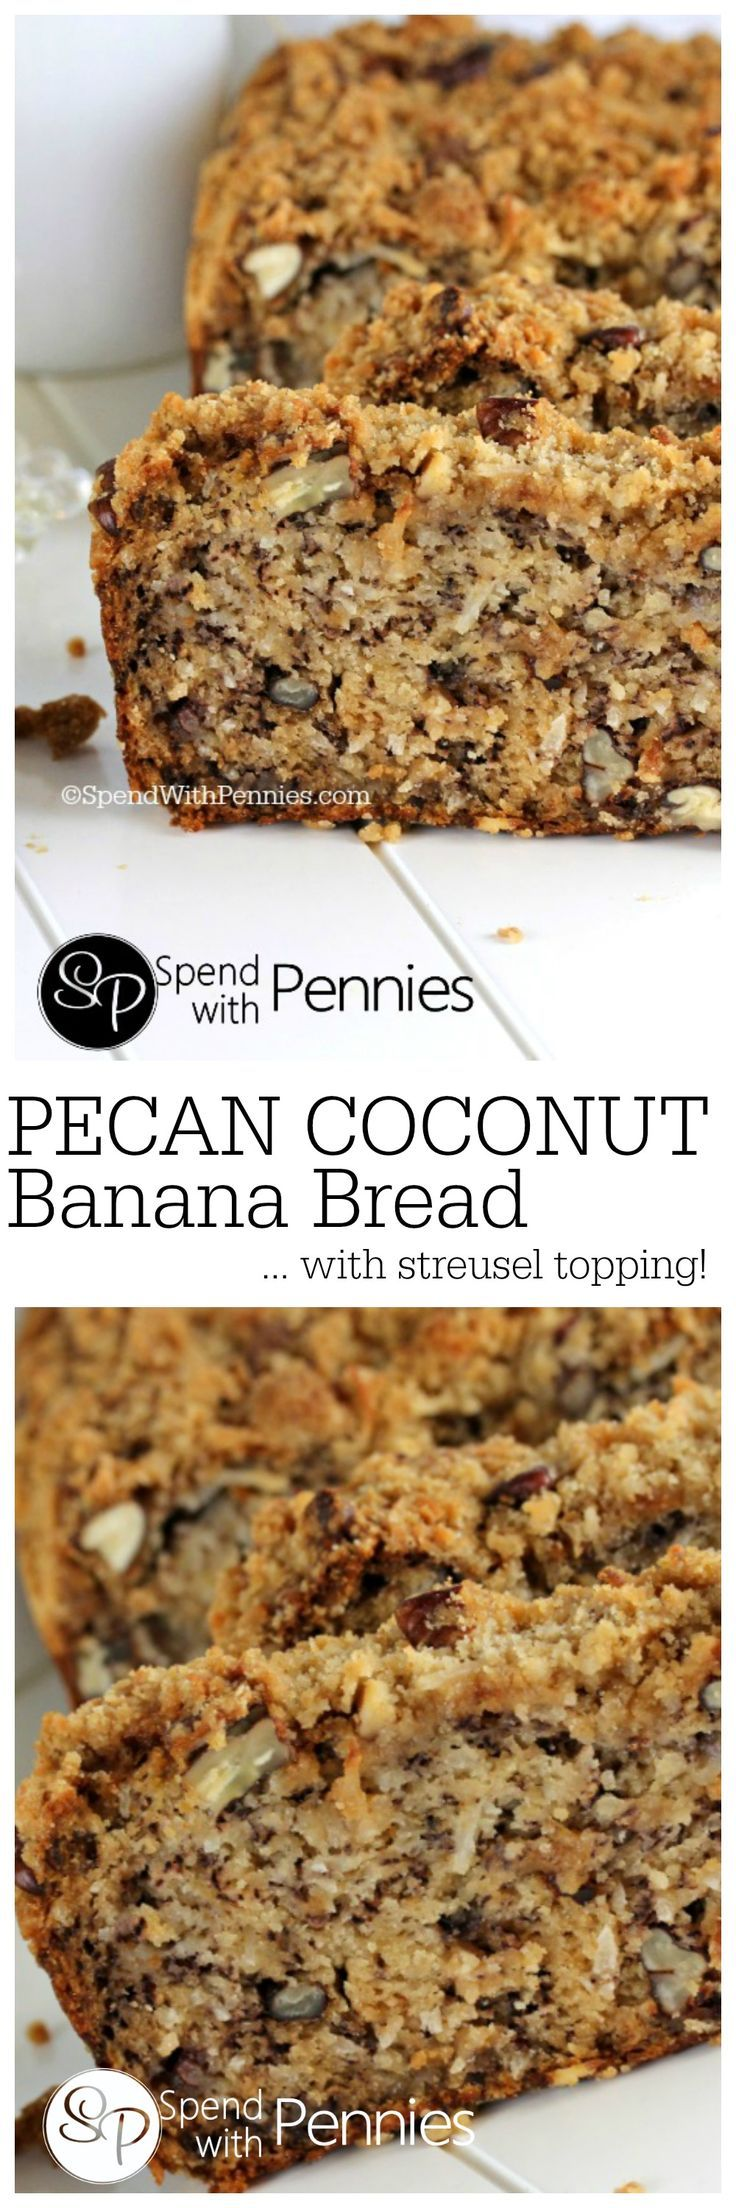 Pecan Coconut Banana Bread Recipe with a streusel topping! If you're looking for the perfect banana bread recipe, this is it!